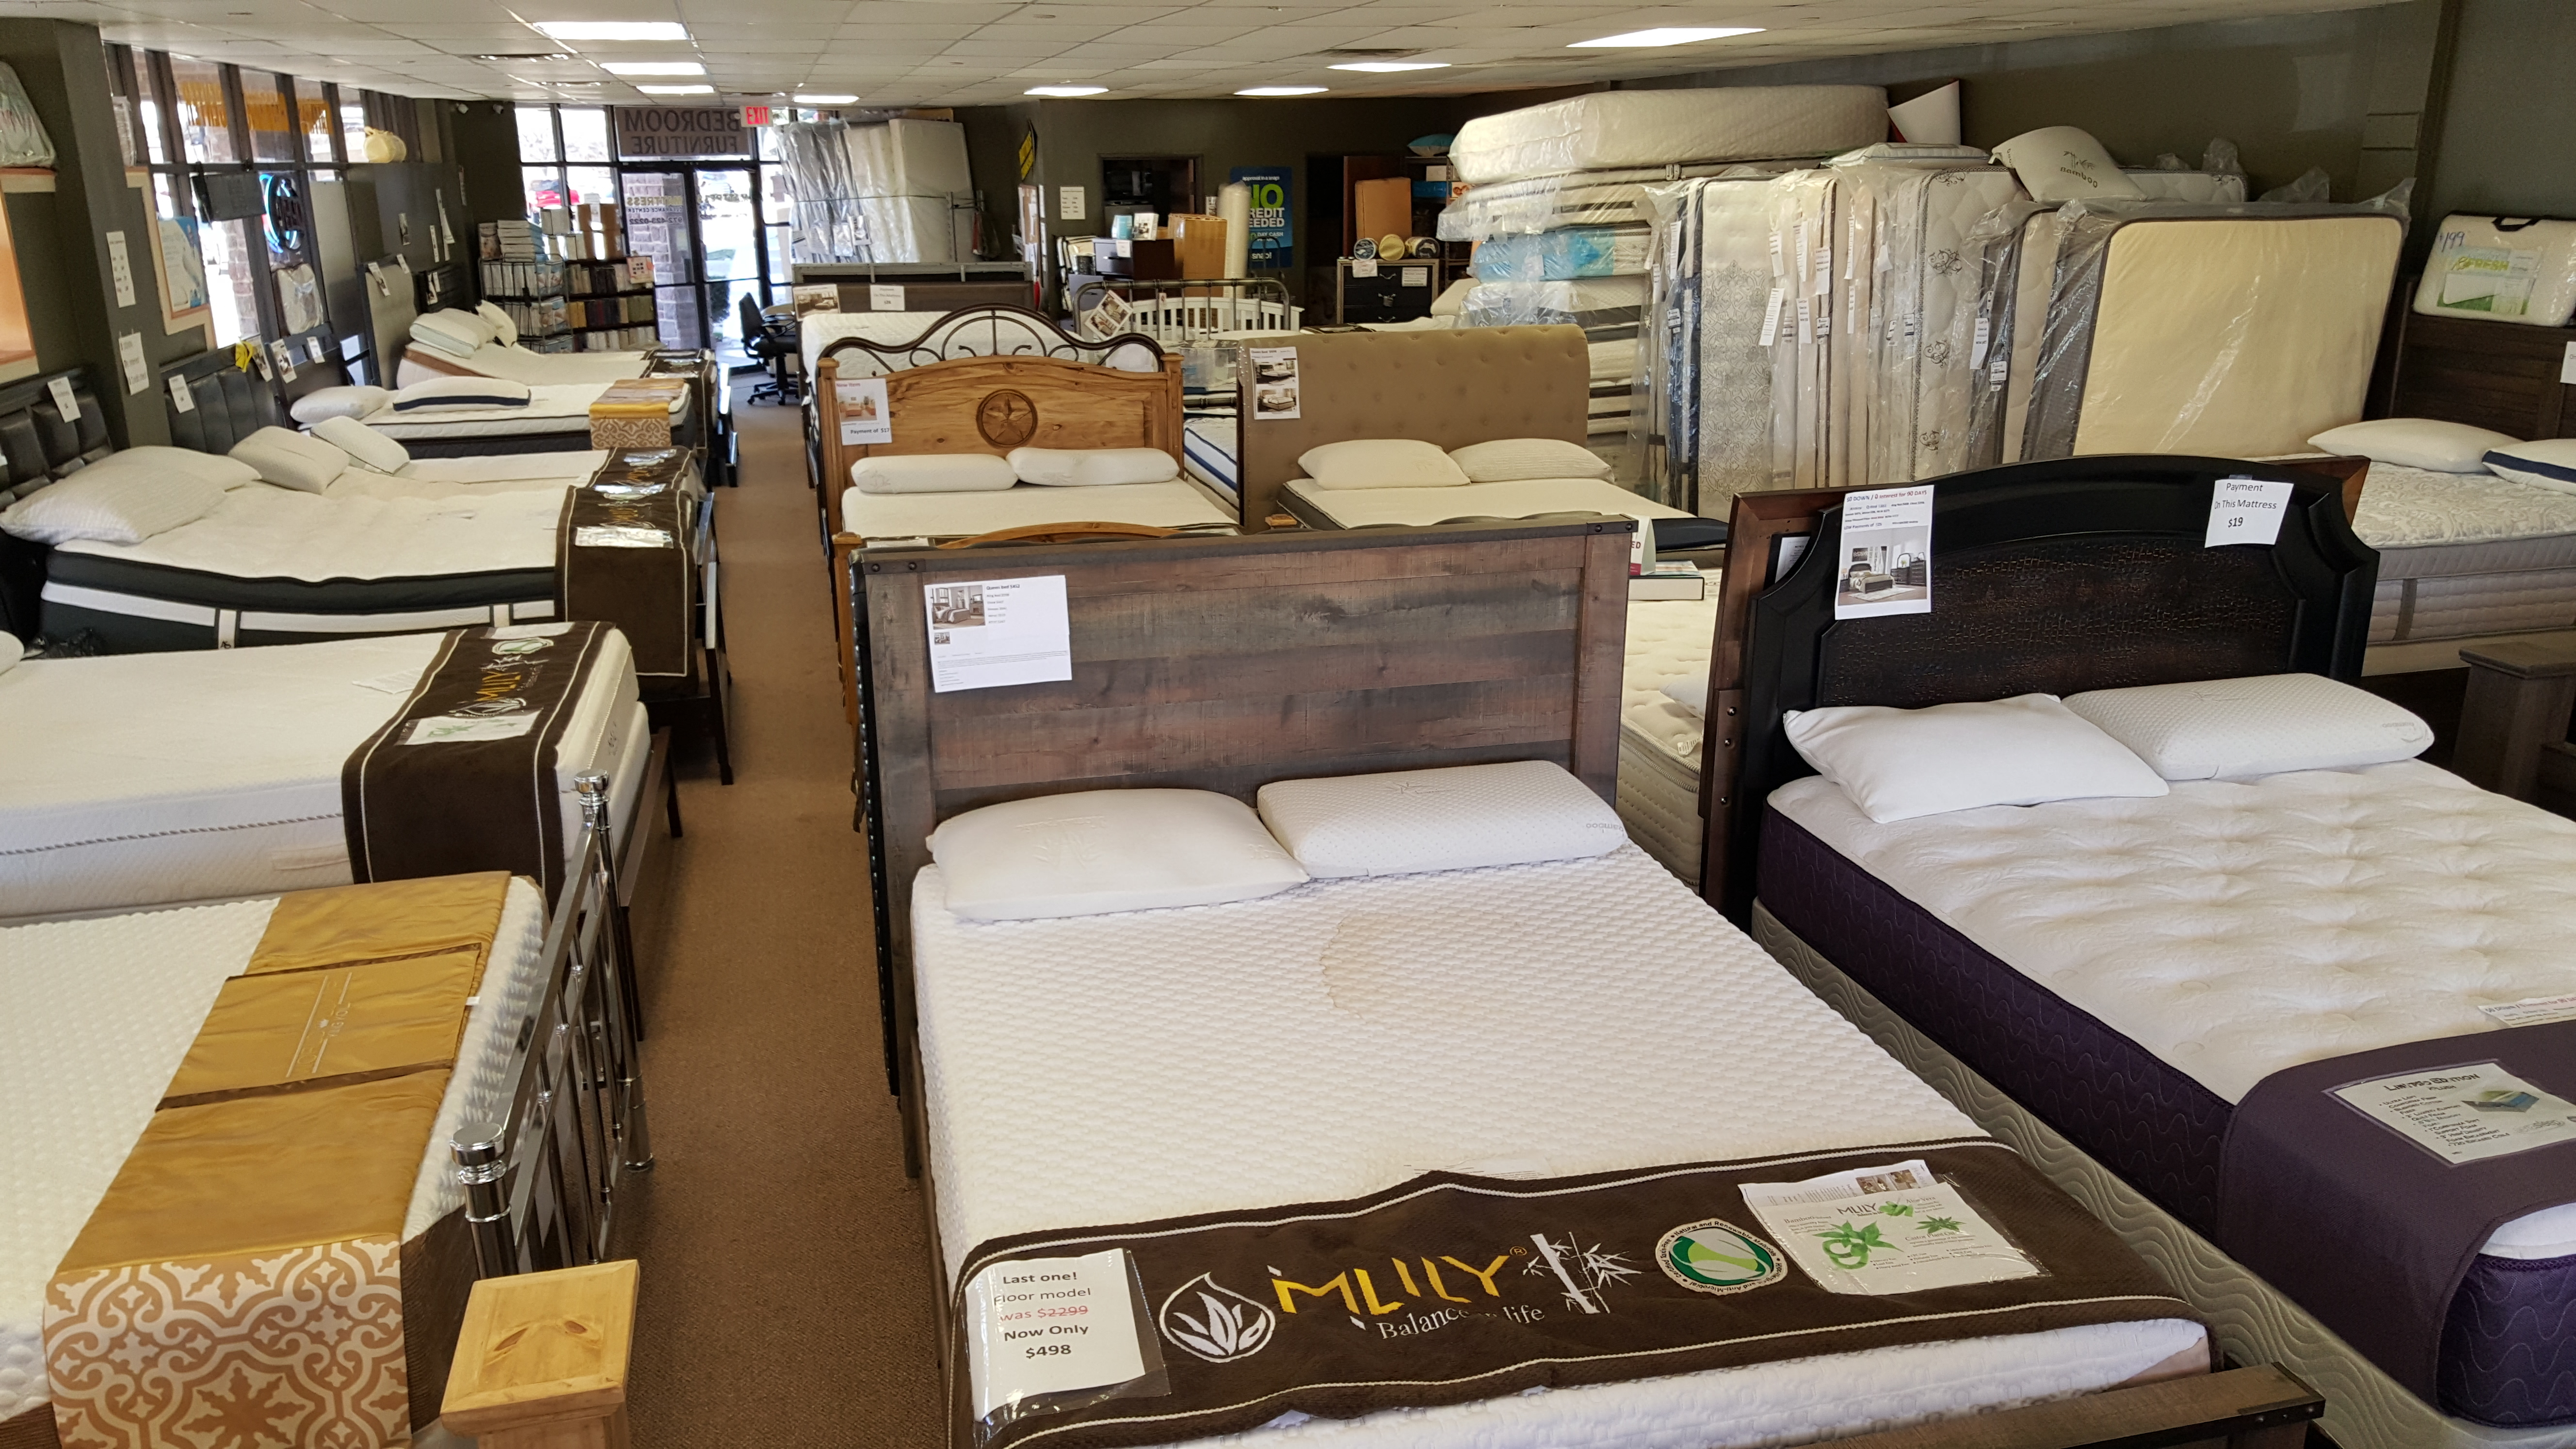 Mattress Clearance Outlet image 2